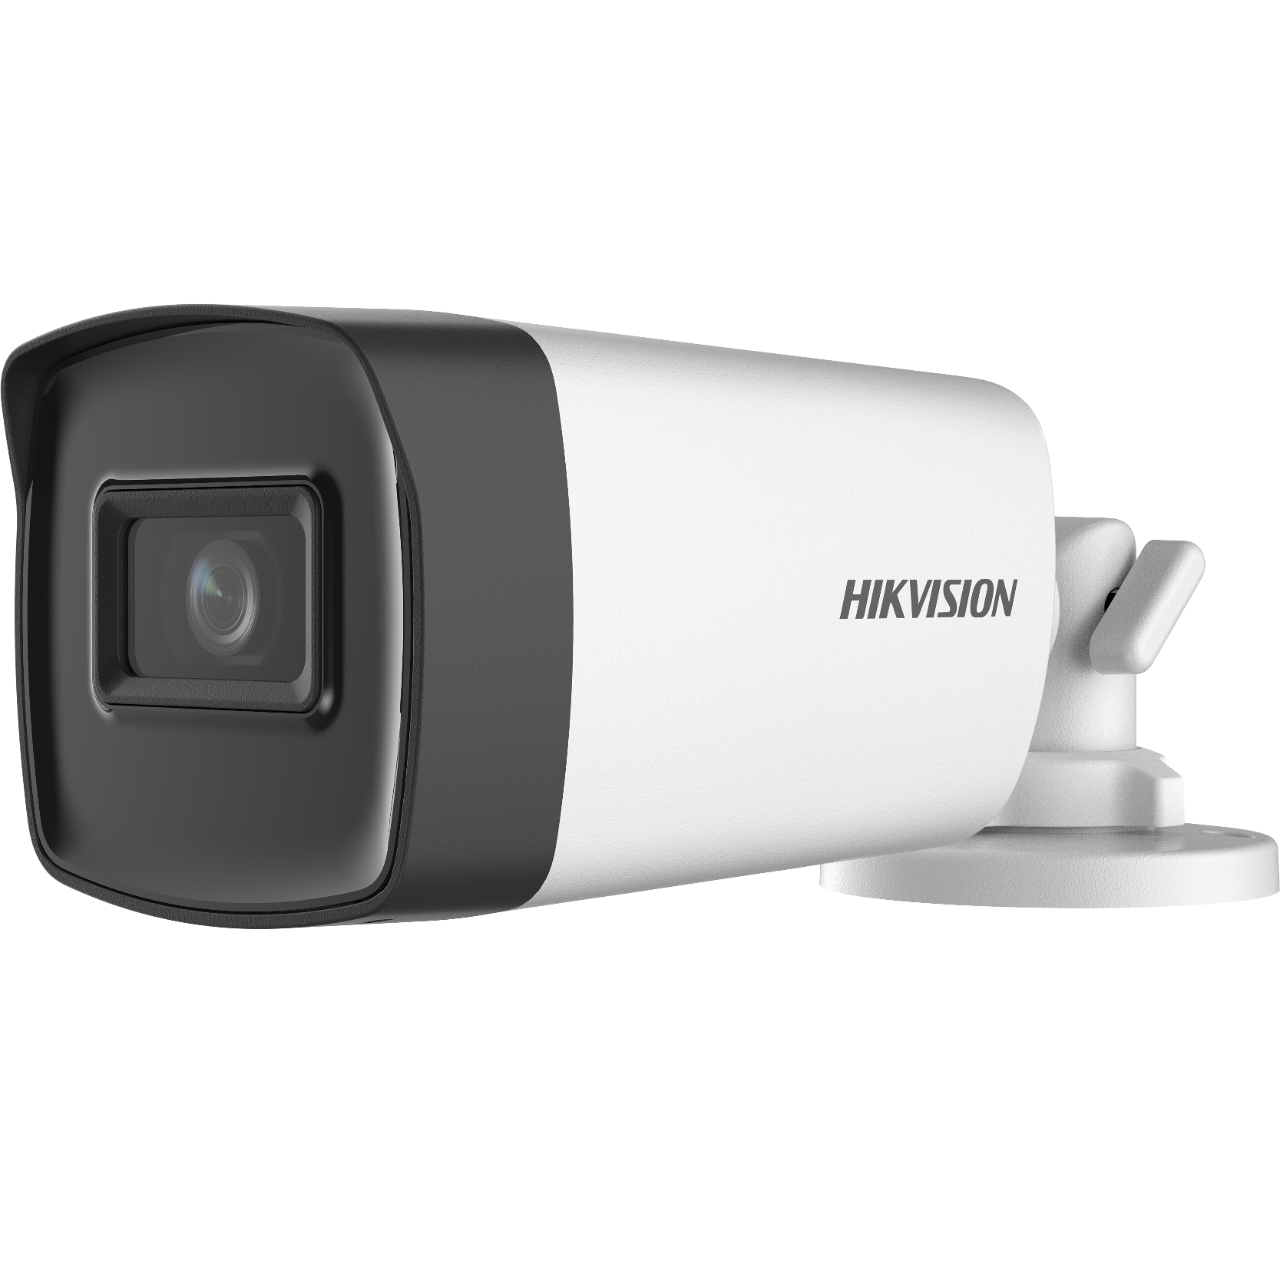 Hikvision (DS-2CE17H0T-IT3F) 5 MP Fixed Bullet Camera